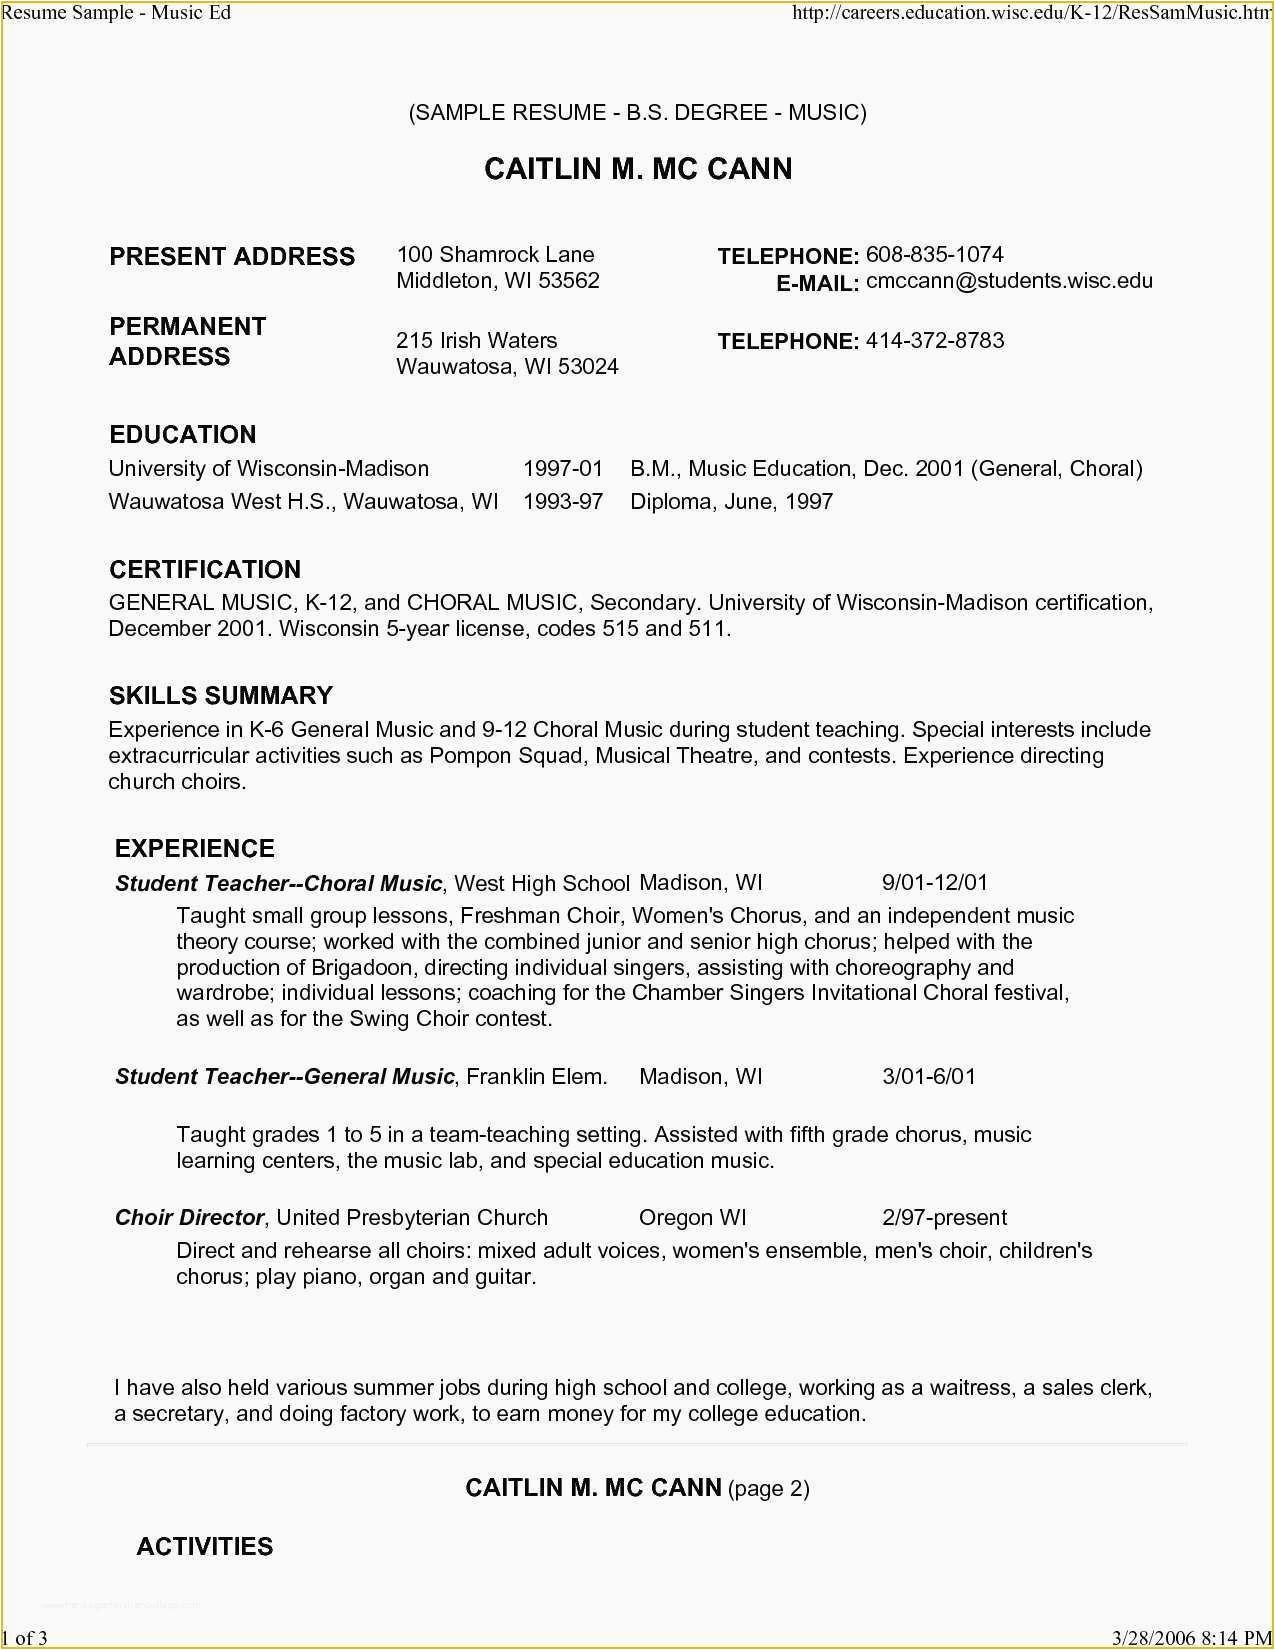 Sample Music Resume for College Application Free Musician Resume Template Musician Resume Template